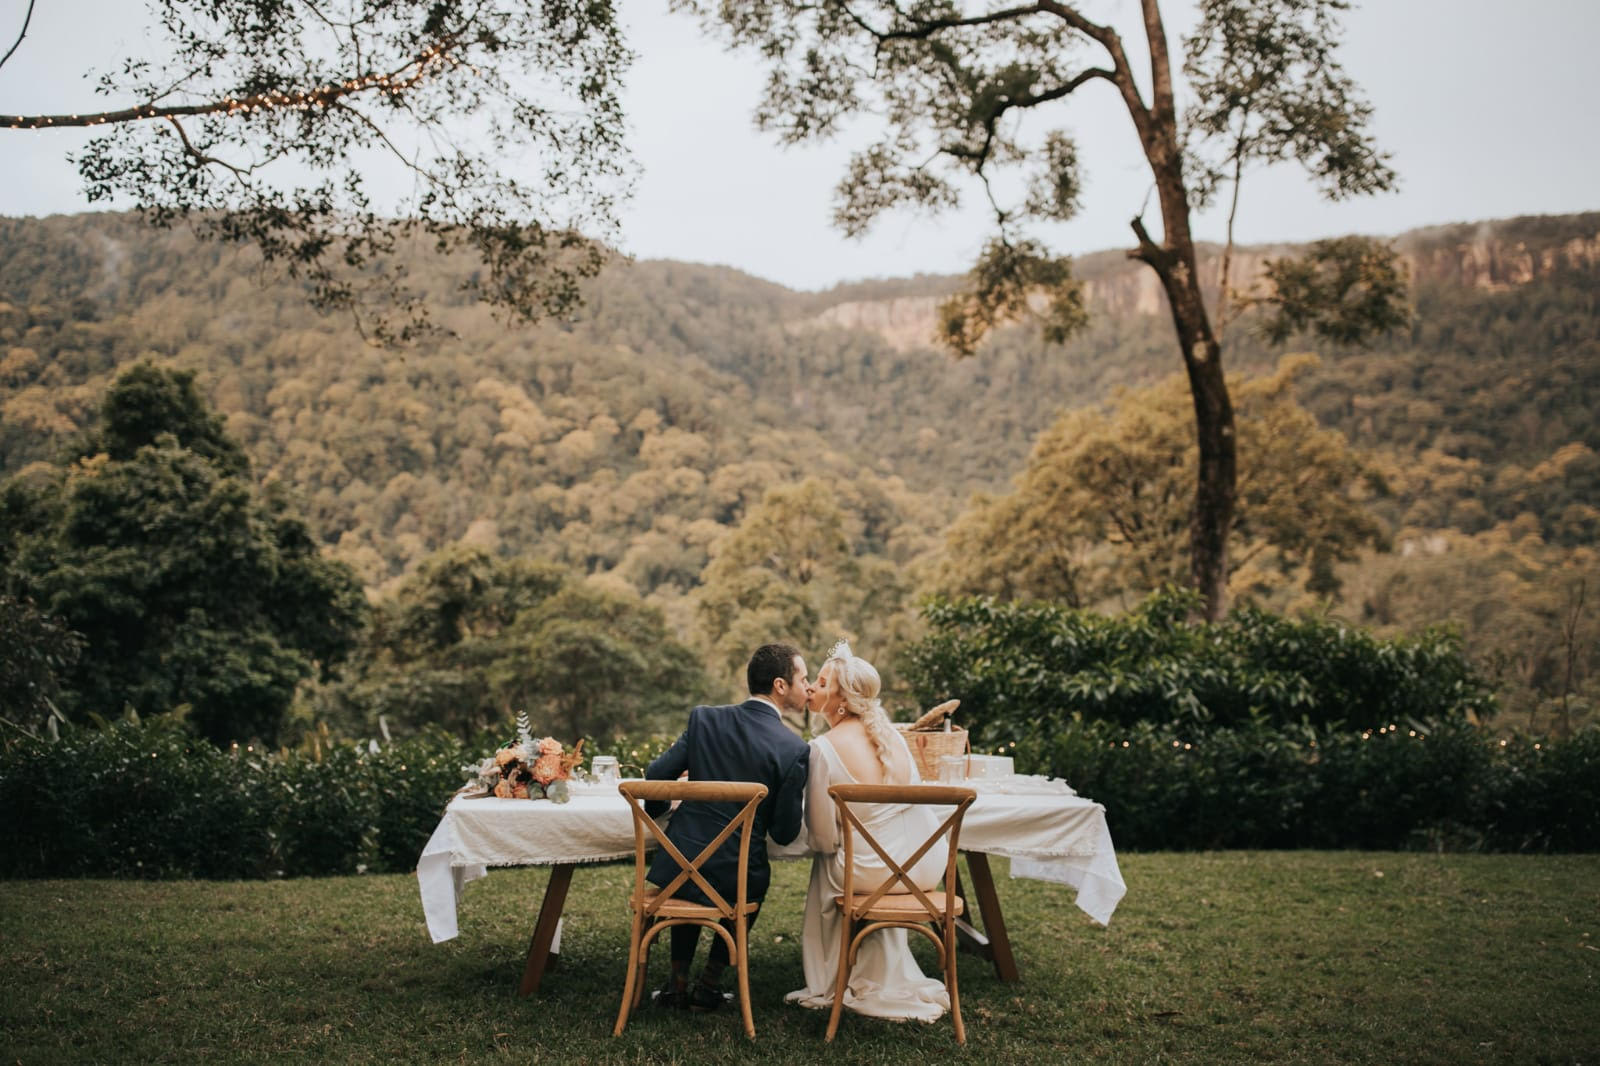 Subscribe to our newsletter to hear more about Gold Coast events and weddings in our stunning hinterland